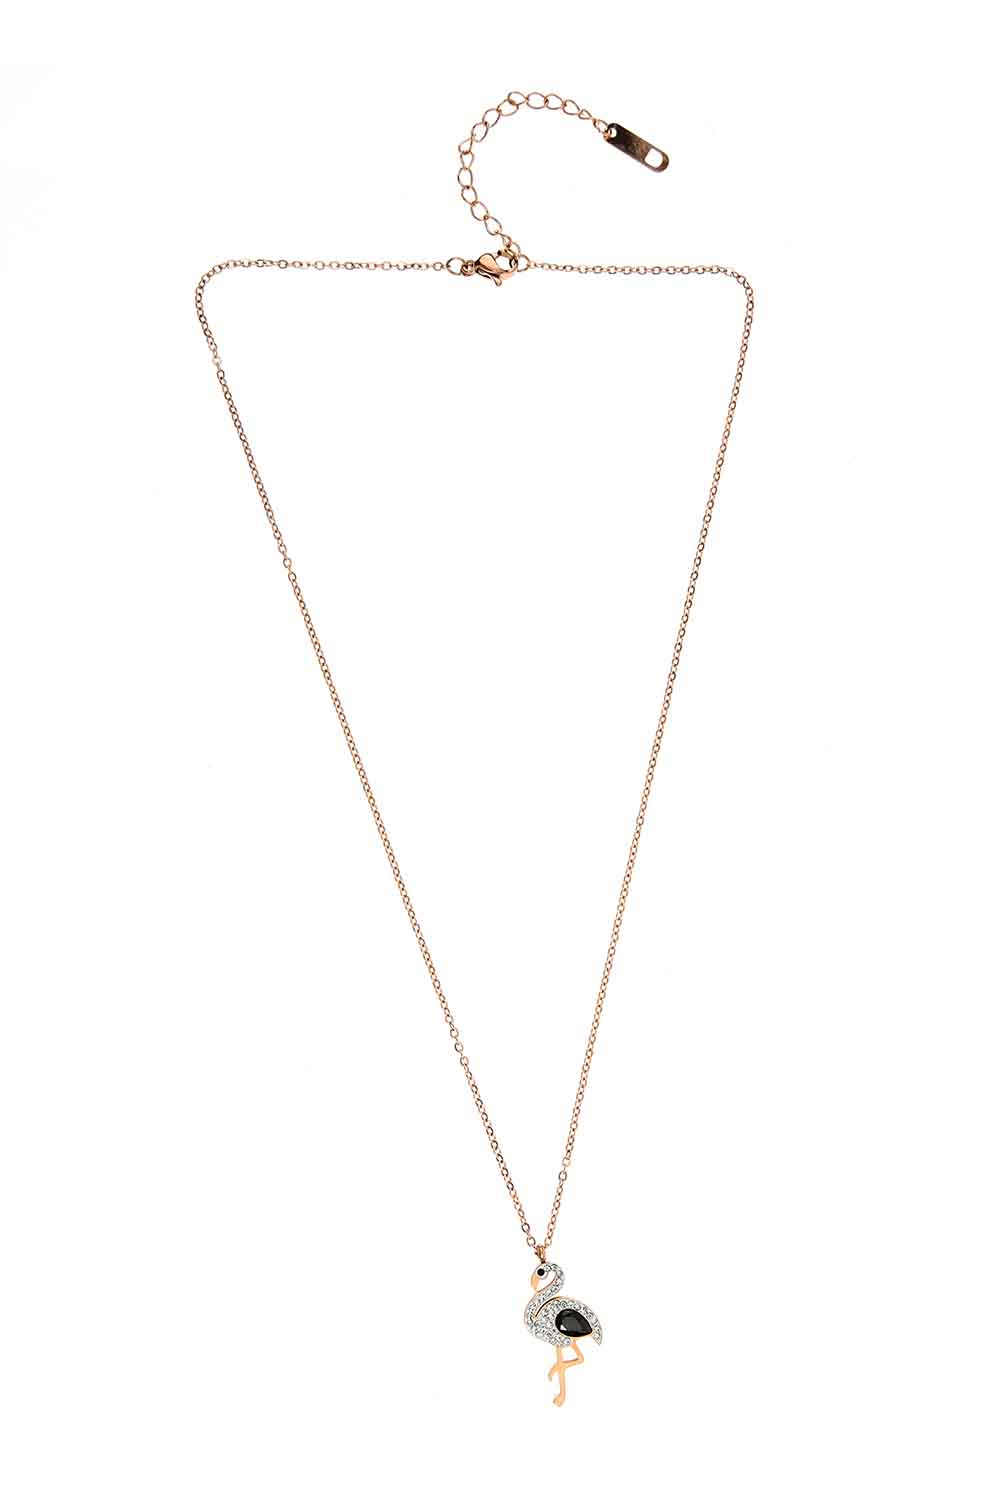 MIZALLE Pelican Detailed Steel Necklace (St) (1)